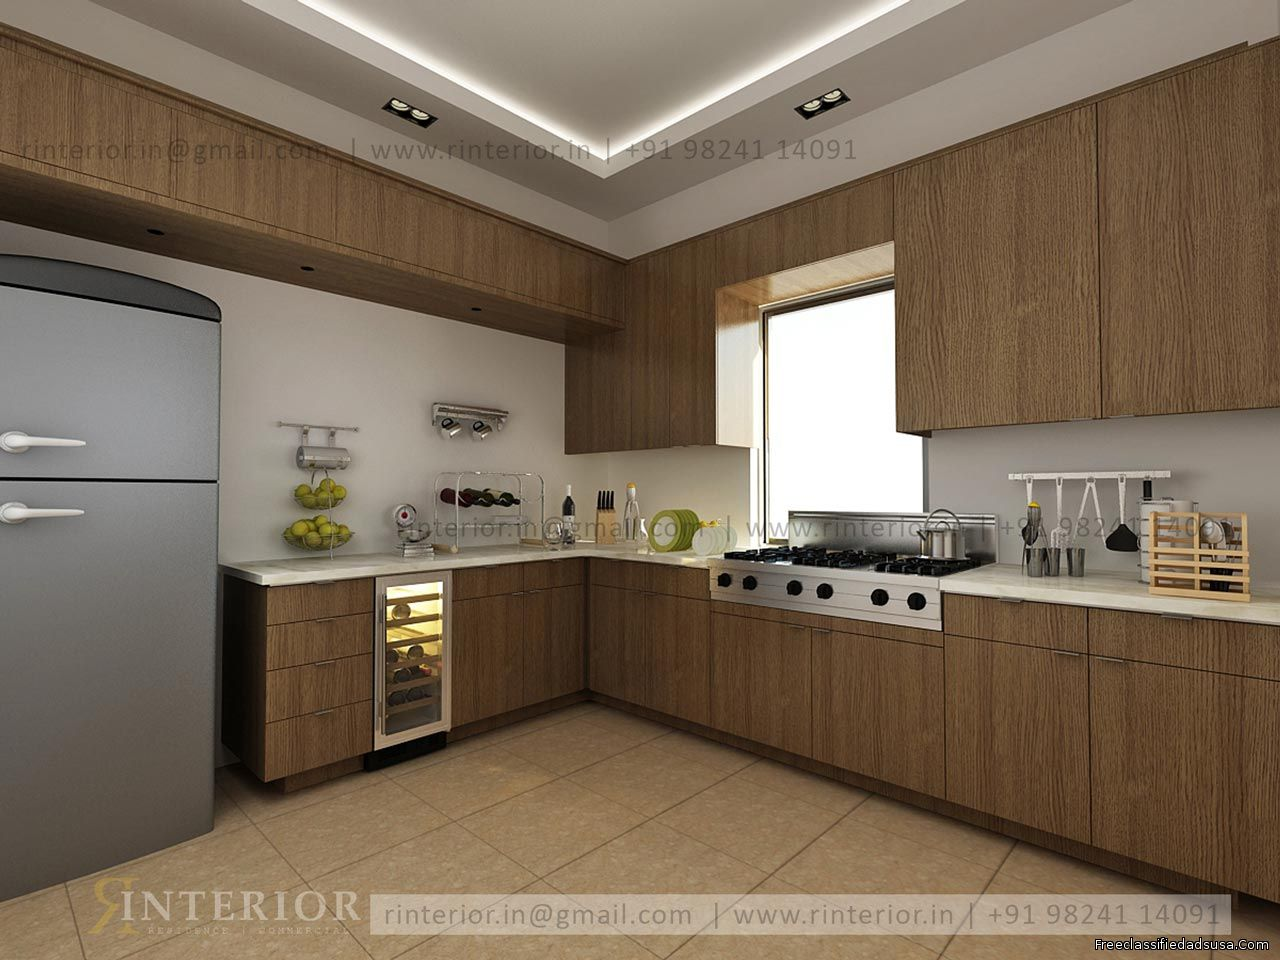 Accurate House Plan Design in India by RInterior